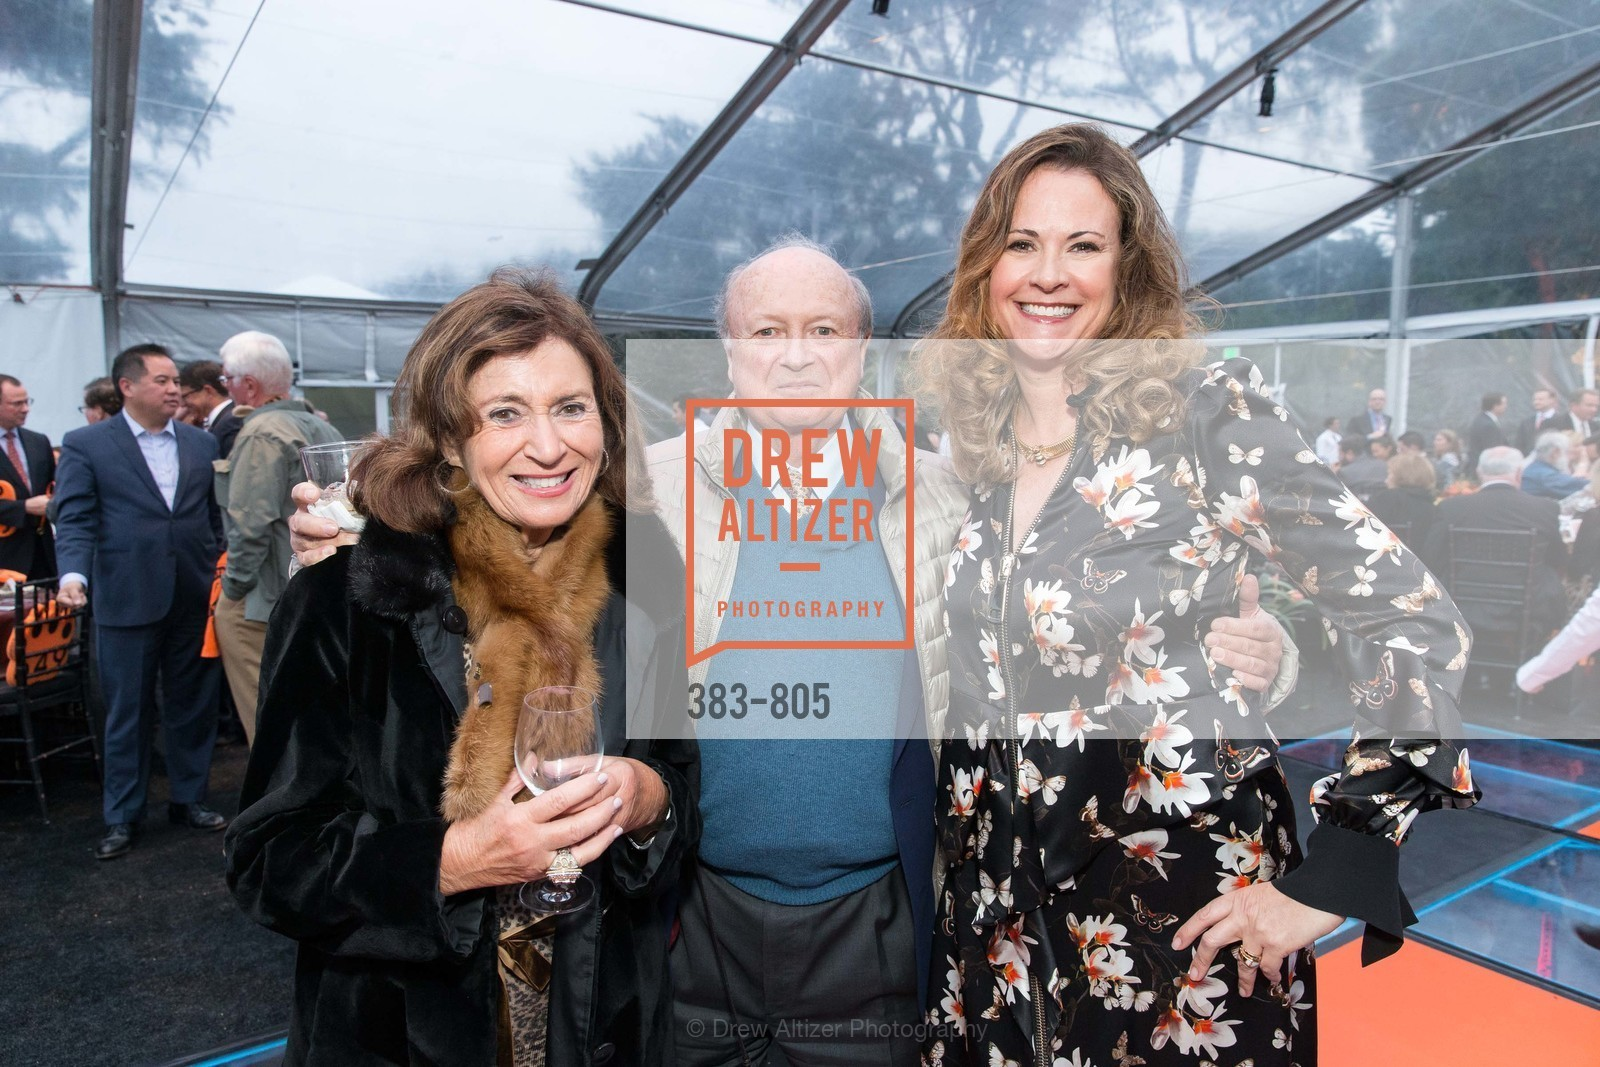 Mary Ellie Johnson, Rupert Johnson, Tanya Peterson, ZOOFEST 2015, US, April 25th, 2015,Drew Altizer, Drew Altizer Photography, full-service agency, private events, San Francisco photographer, photographer california